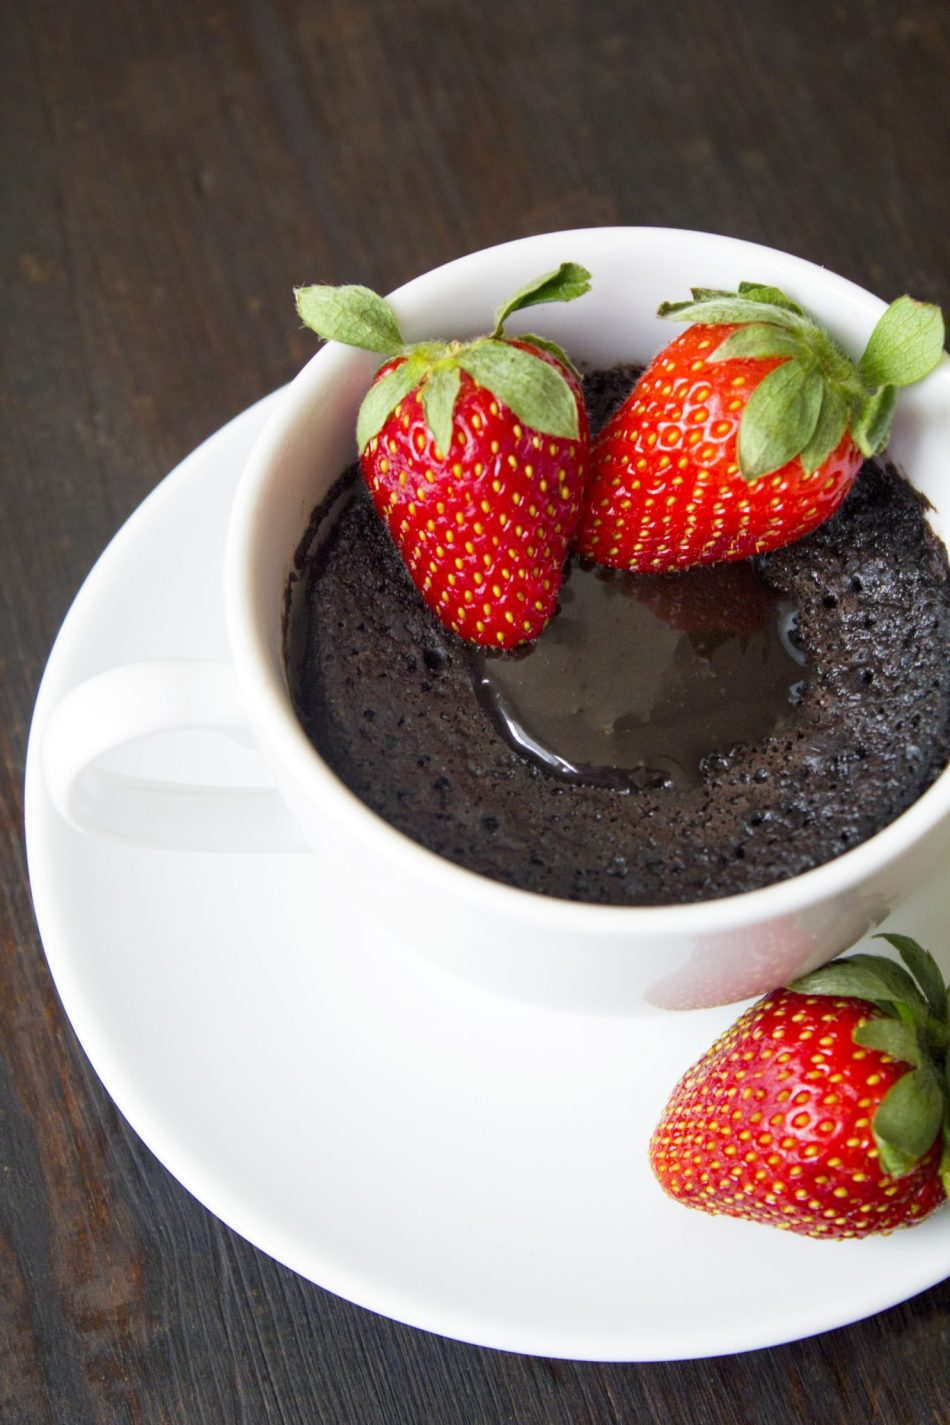 Chocolate Lava Mug Cake | Vegan, gluten free, and dairy free. Takes less than 5 minutes to make!